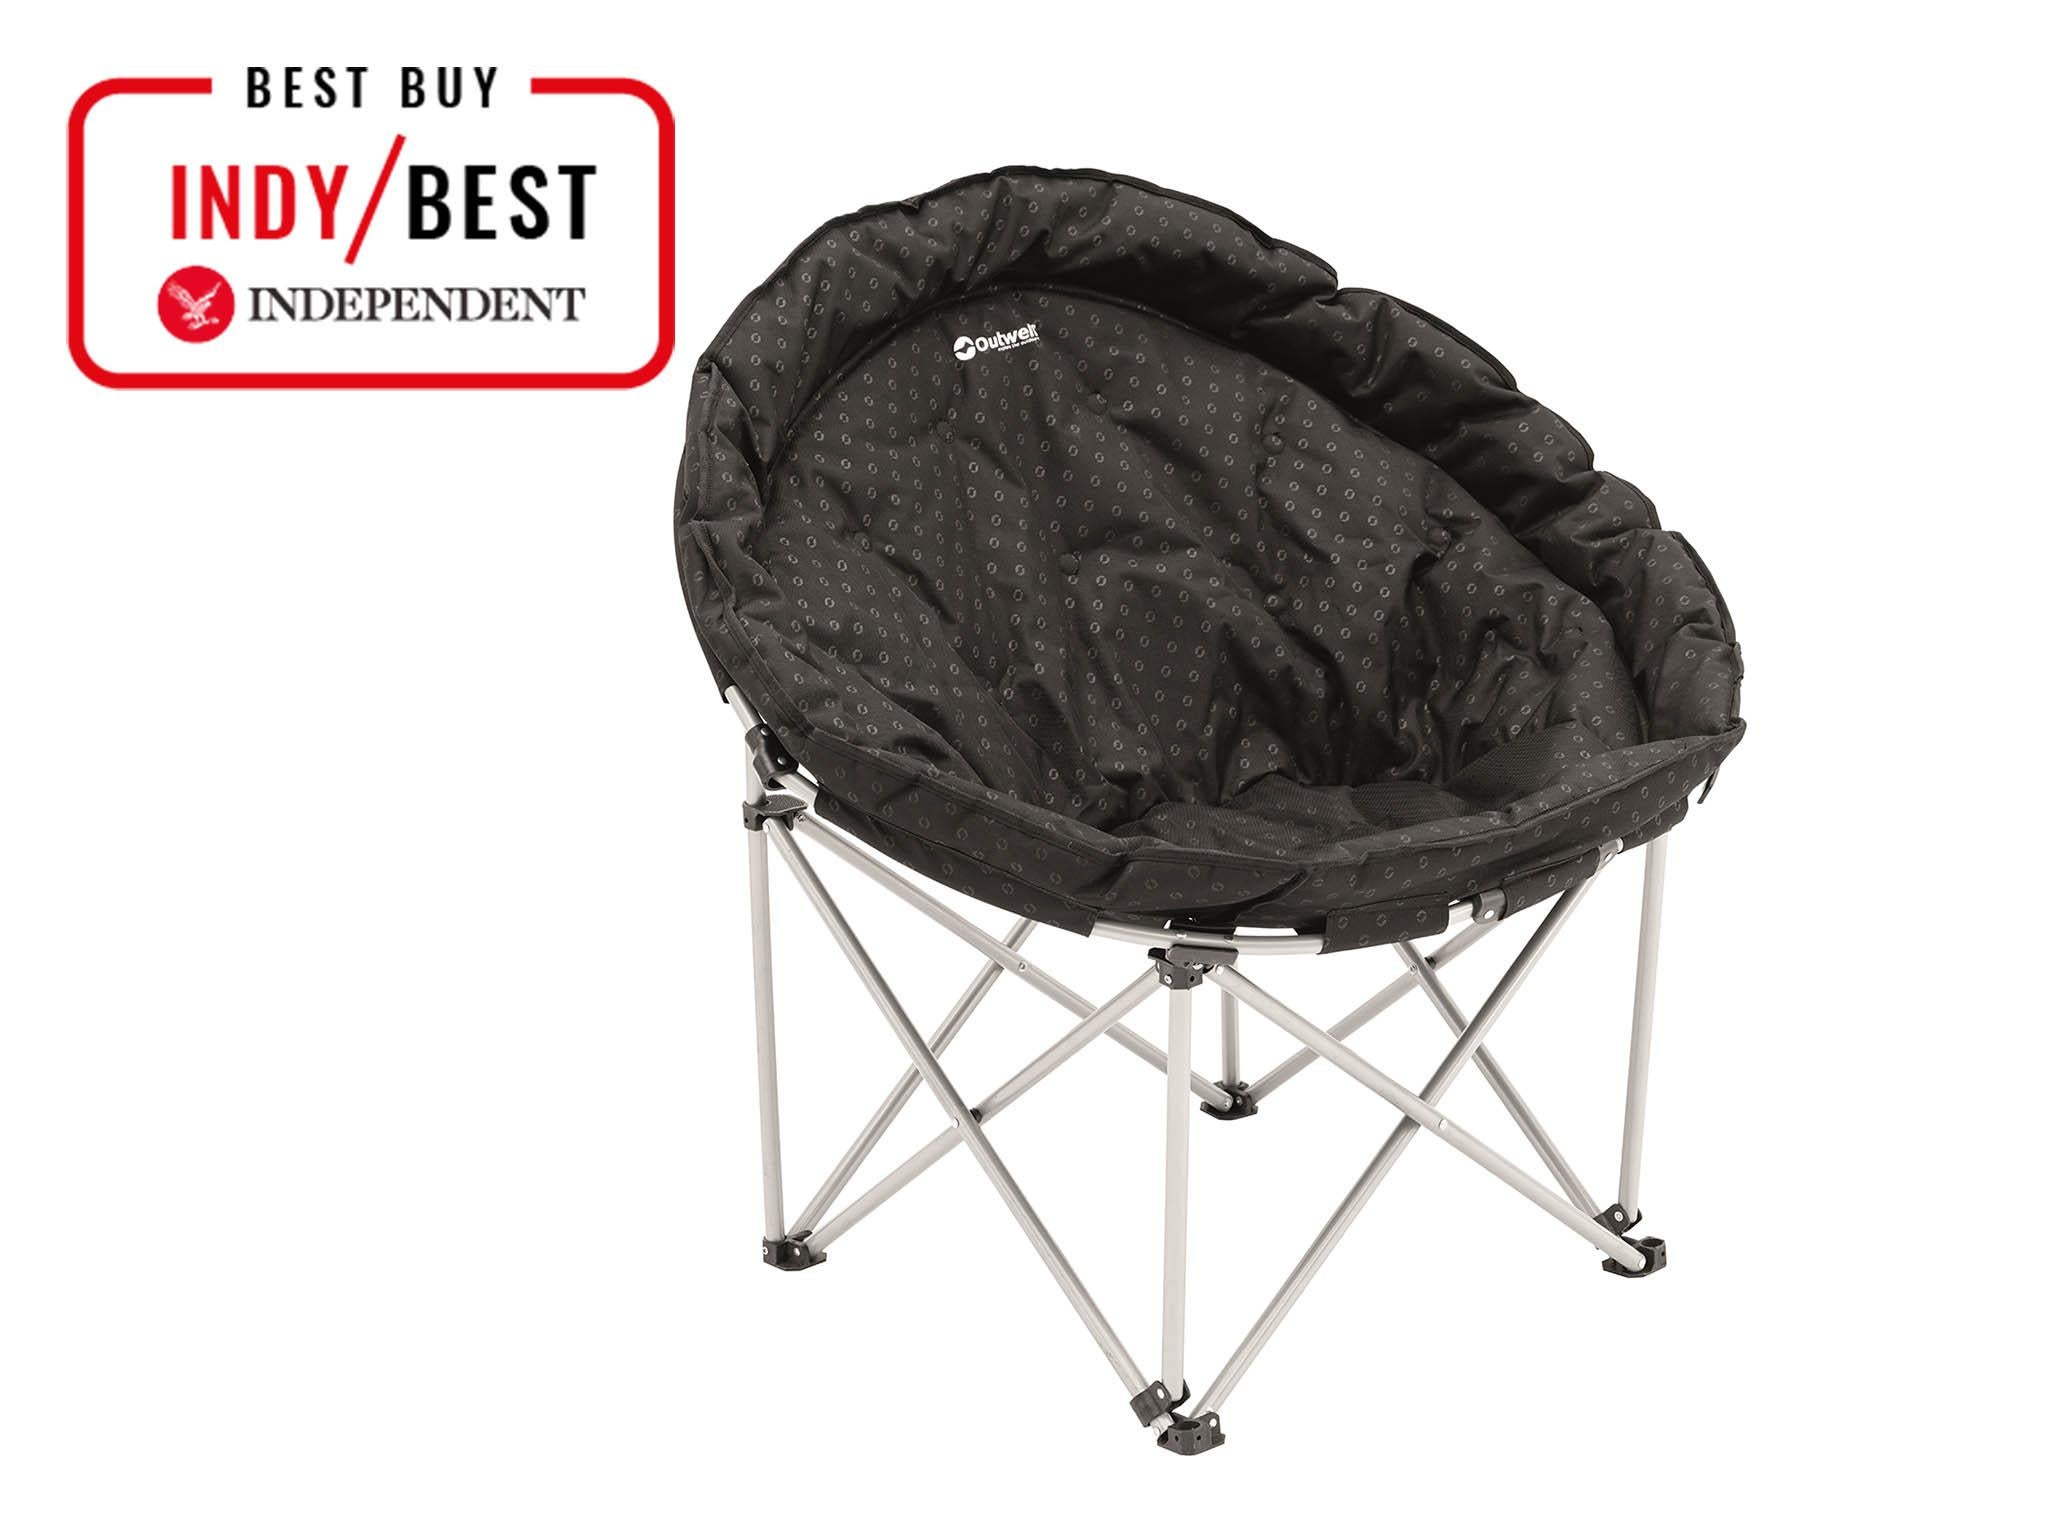 Astonishing Best Camping Chairs To Suit All Your Glamping And Festival Needs Gmtry Best Dining Table And Chair Ideas Images Gmtryco